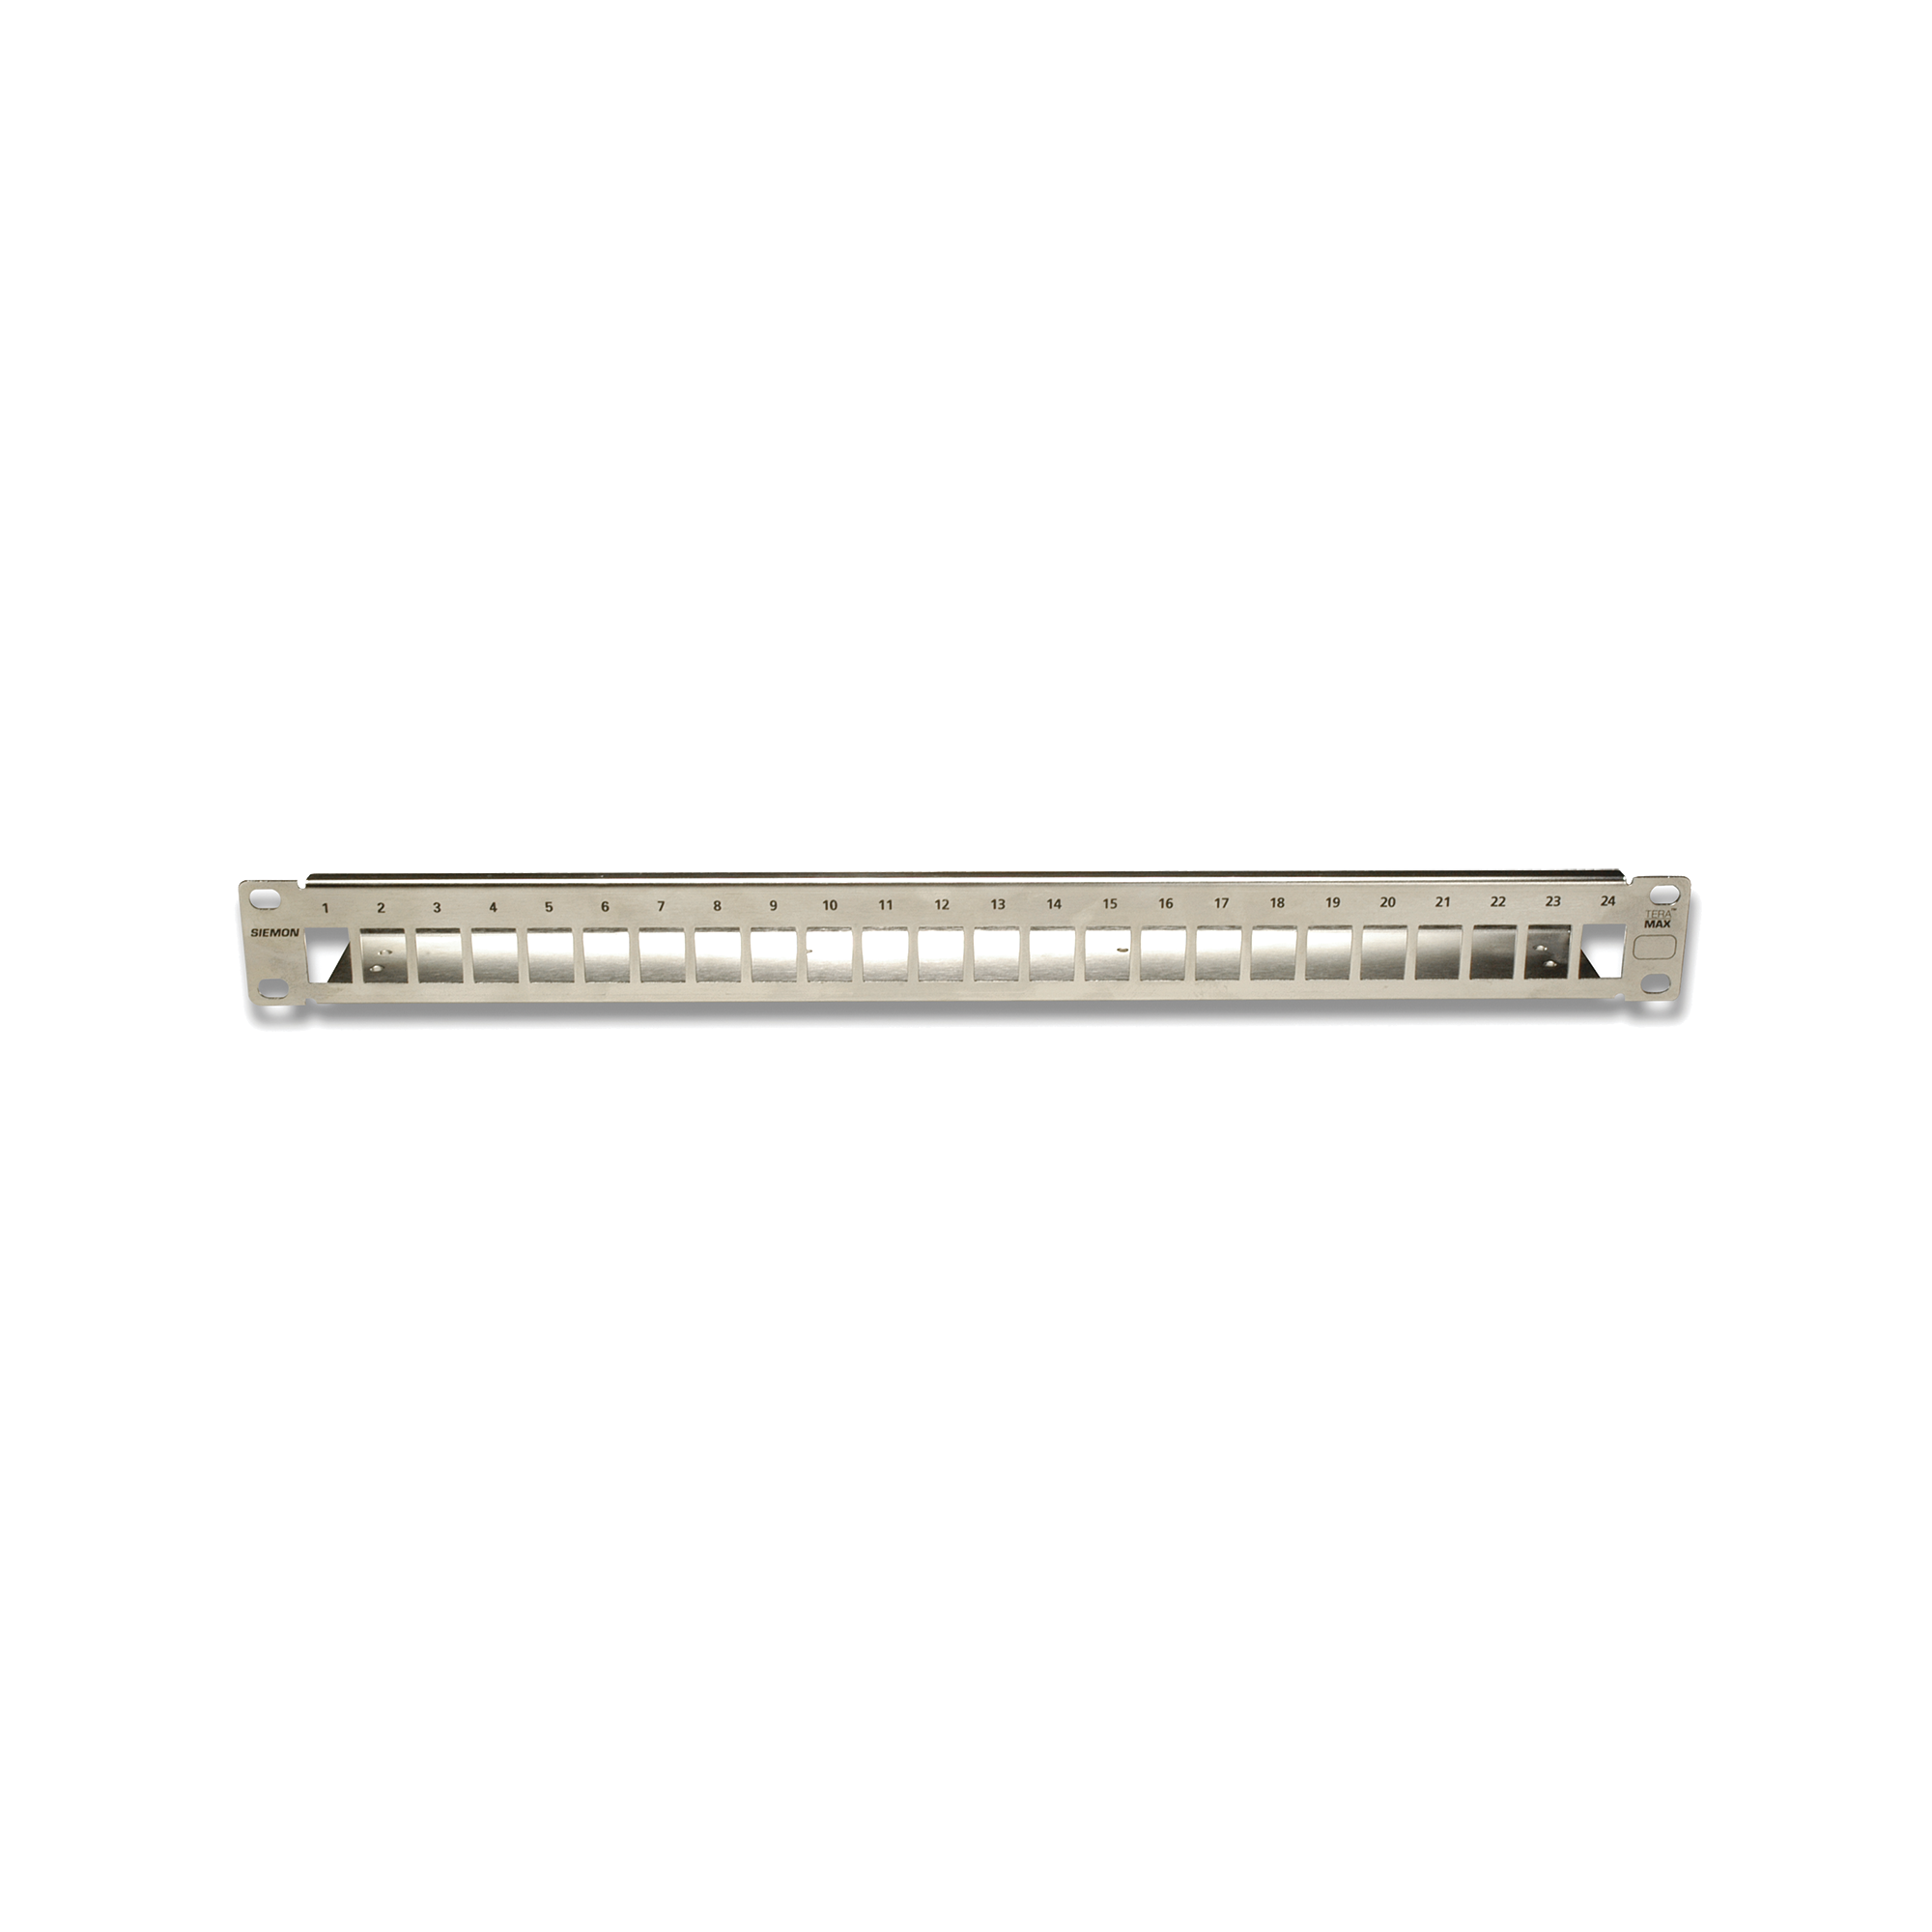 Patch Panel TERA-MAX Blindado de 24 Puertos, Modular, Plano, Color Metalico, 1UR